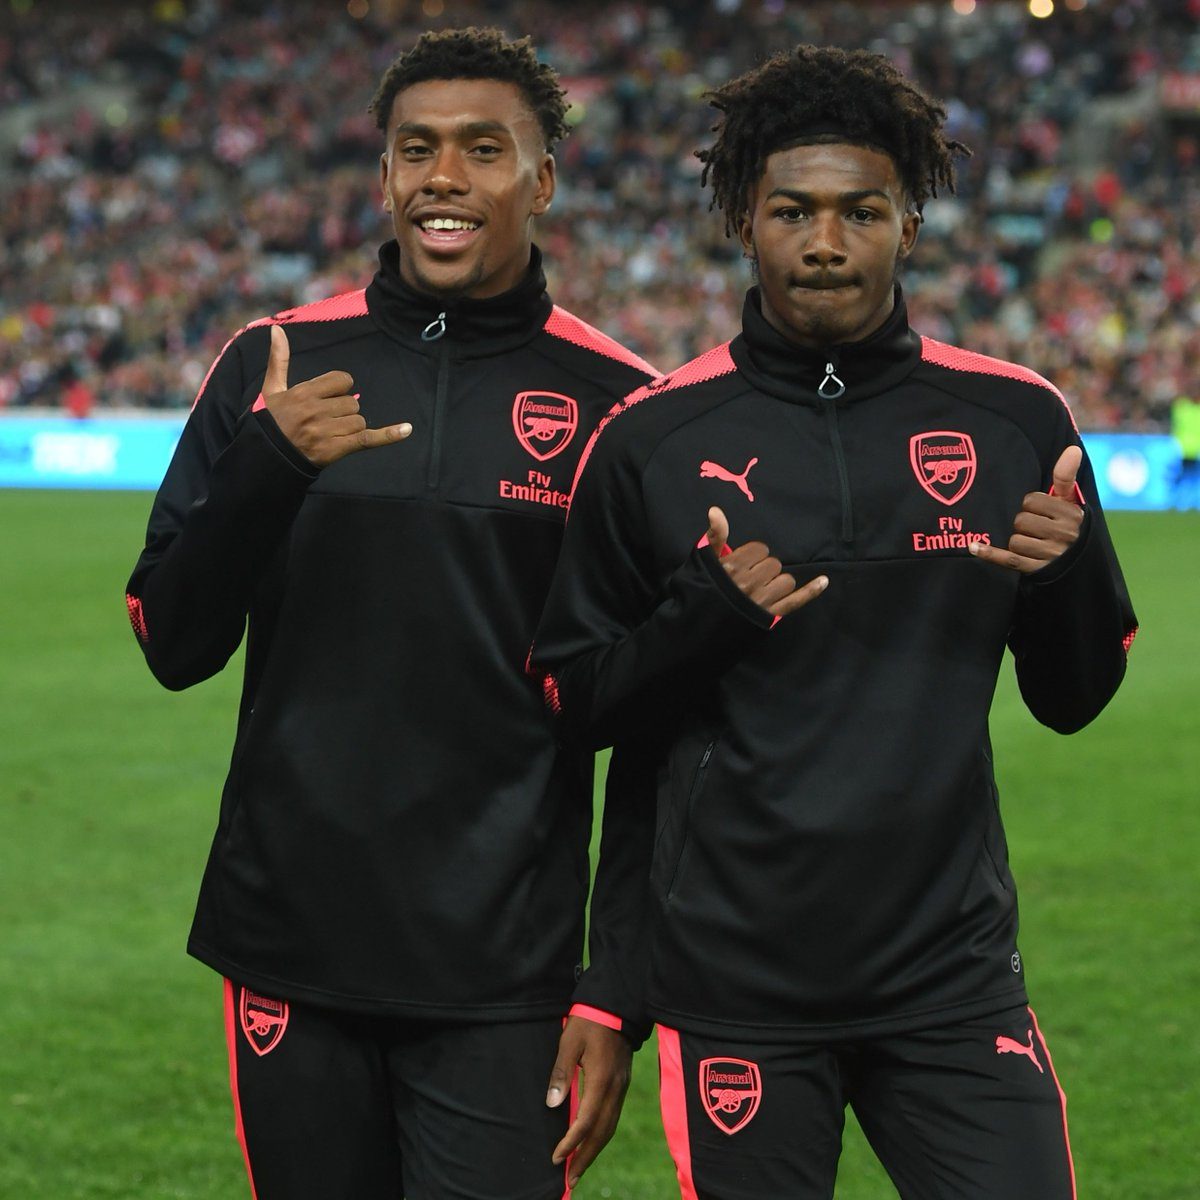 RT @Arsenal: From Hale End to here 🔴  Our @ArsenalAcademy boys are living the dream ✨  @Ains_7 🤜🤛 @AlexIwobi https://t.co/It5bs15svg